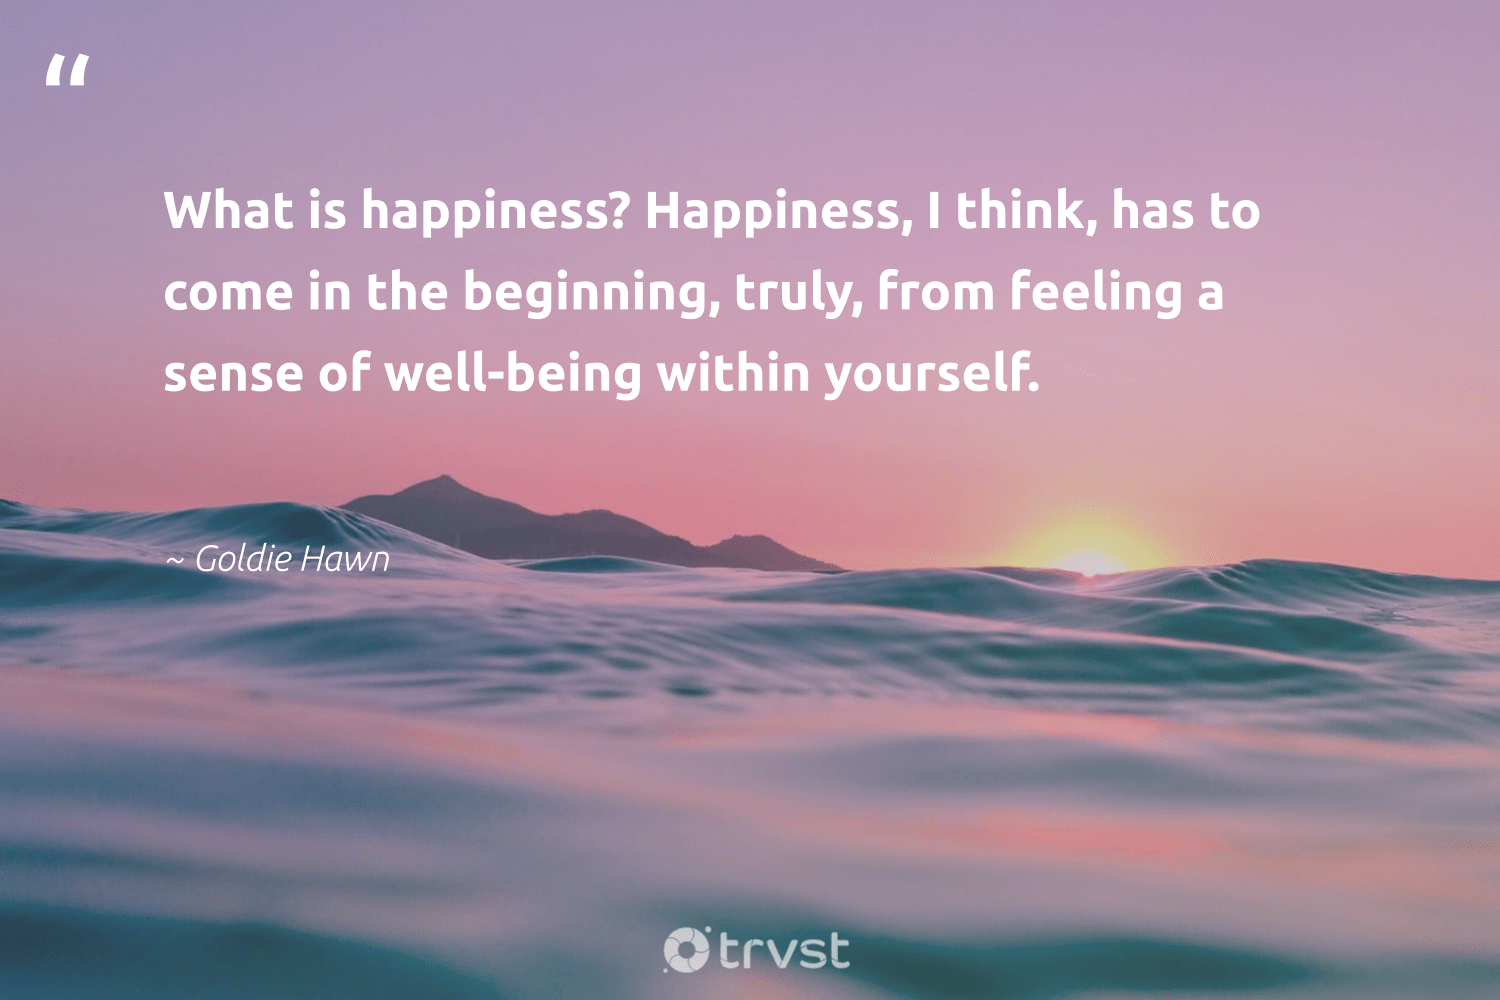 """What is happiness? Happiness, I think, has to come in the beginning, truly, from feeling a sense of well-being within yourself.""  - Goldie Hawn #trvst #quotes #wellbeing #happiness #wellbeing #healthyliving #mindset #changemakers #socialchange #wellness #begreat #nevergiveup"